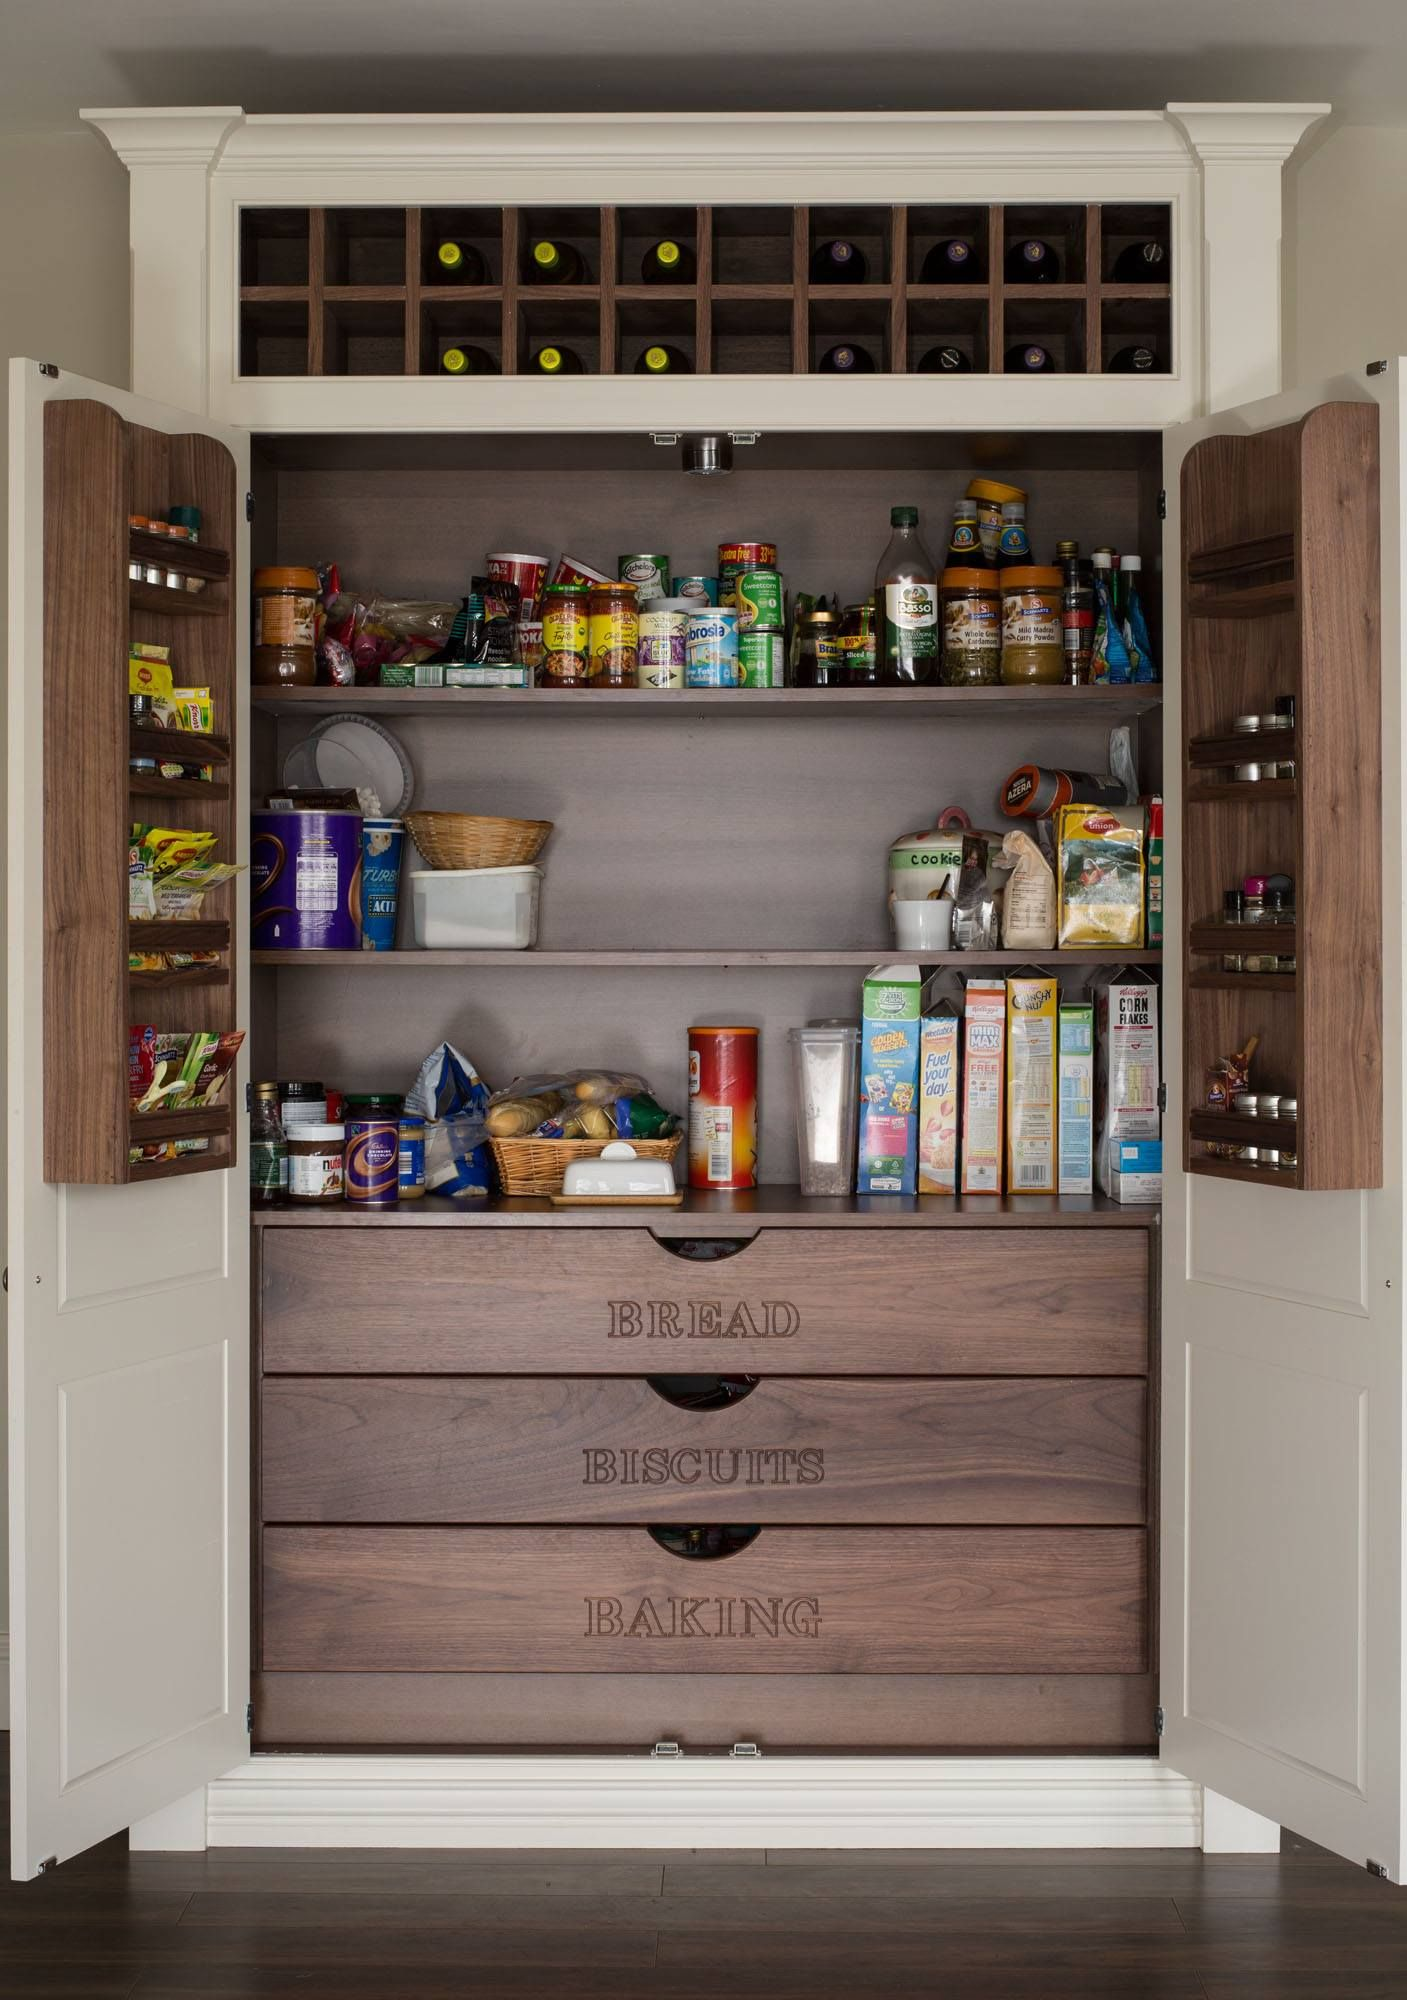 Even if your home doesnt have a large kitchen storage space a stand alone pantry can be a great solution